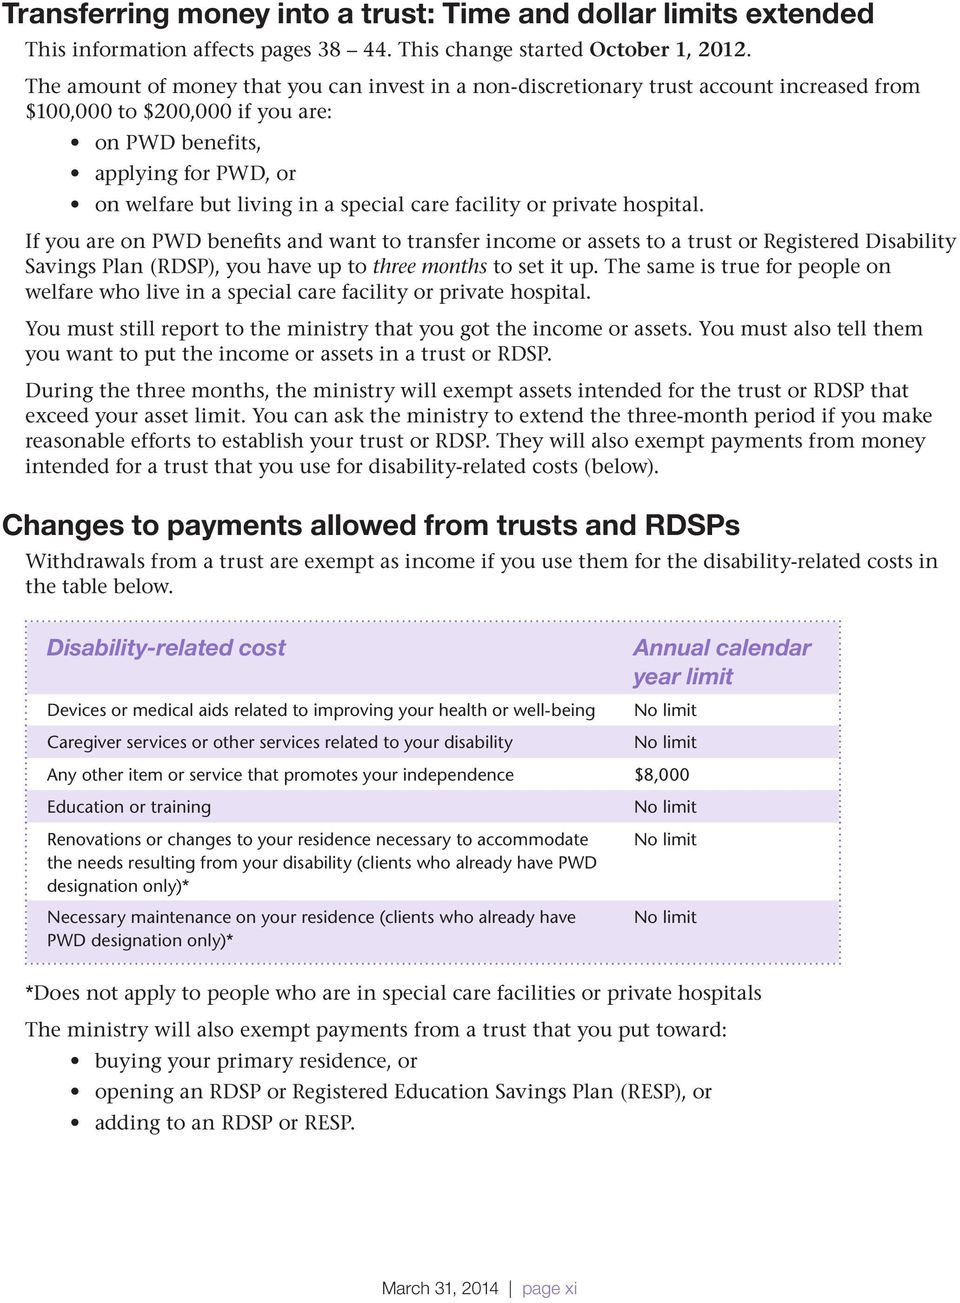 care facility or private hospital. If you are on PWD benefits and want to transfer income or assets to a trust or Registered Disability Savings Plan (RDSP), you have up to three months to set it up.